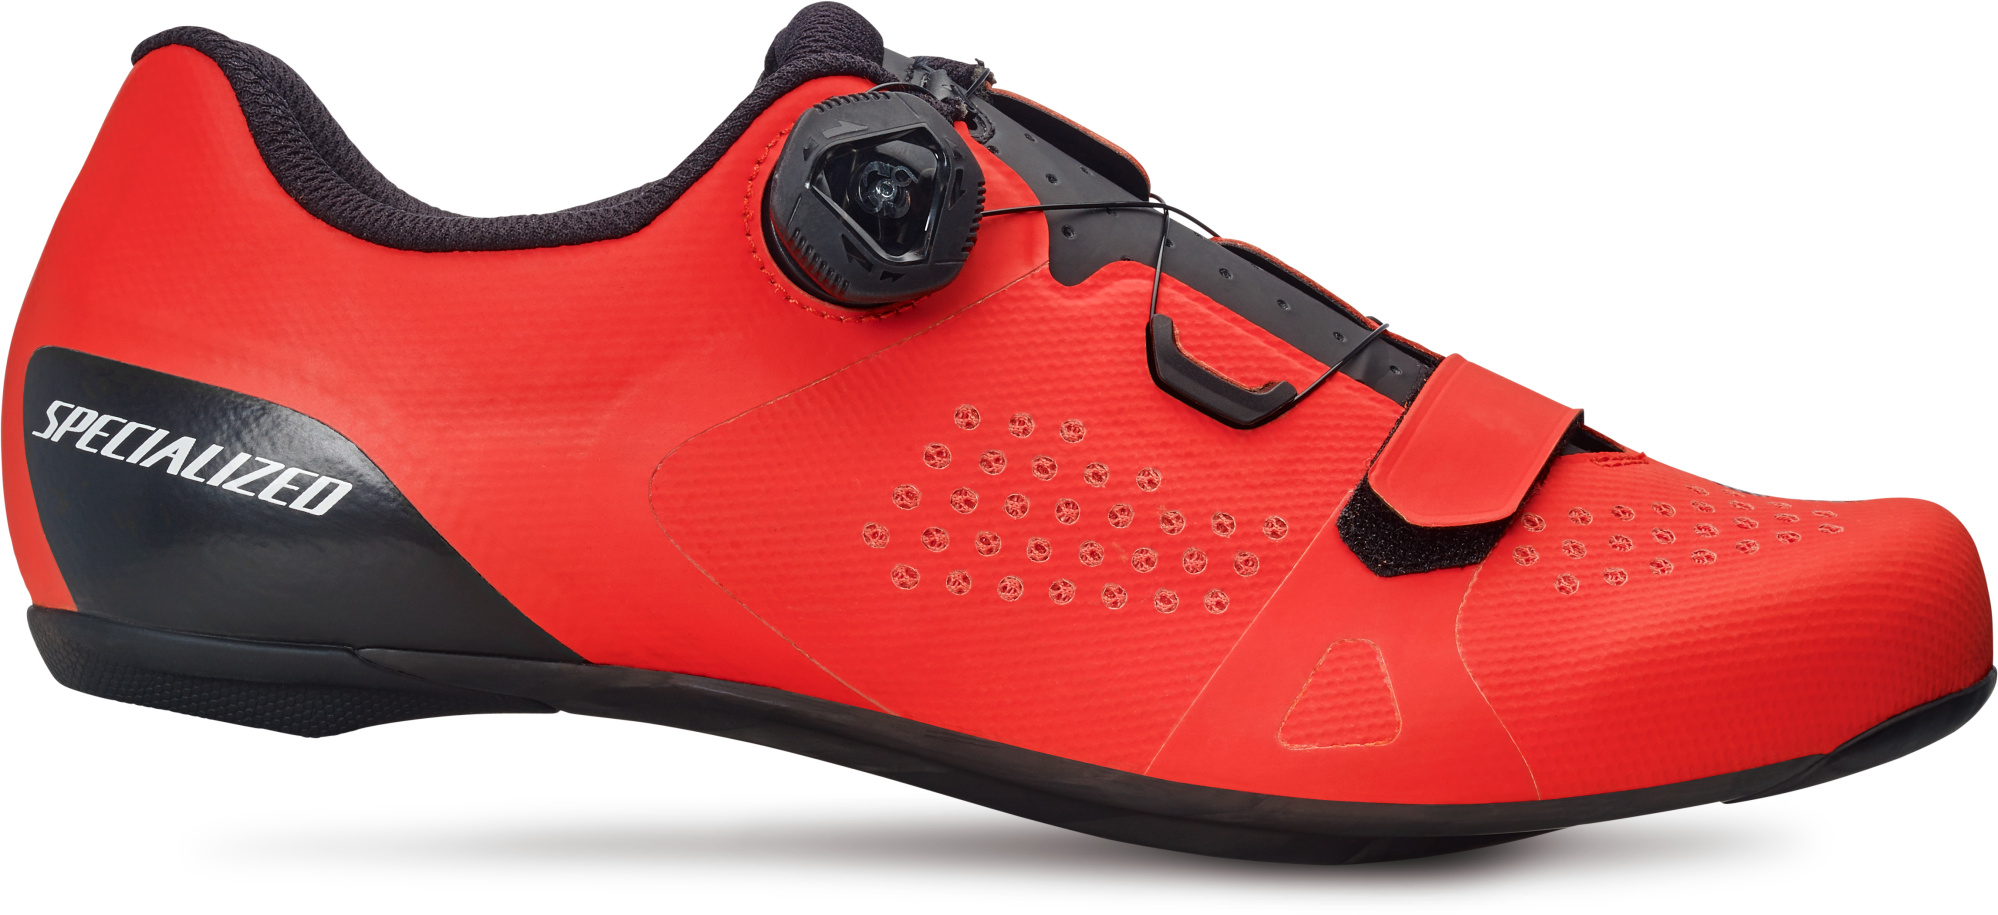 Specialized Comp Road Shoe  Review